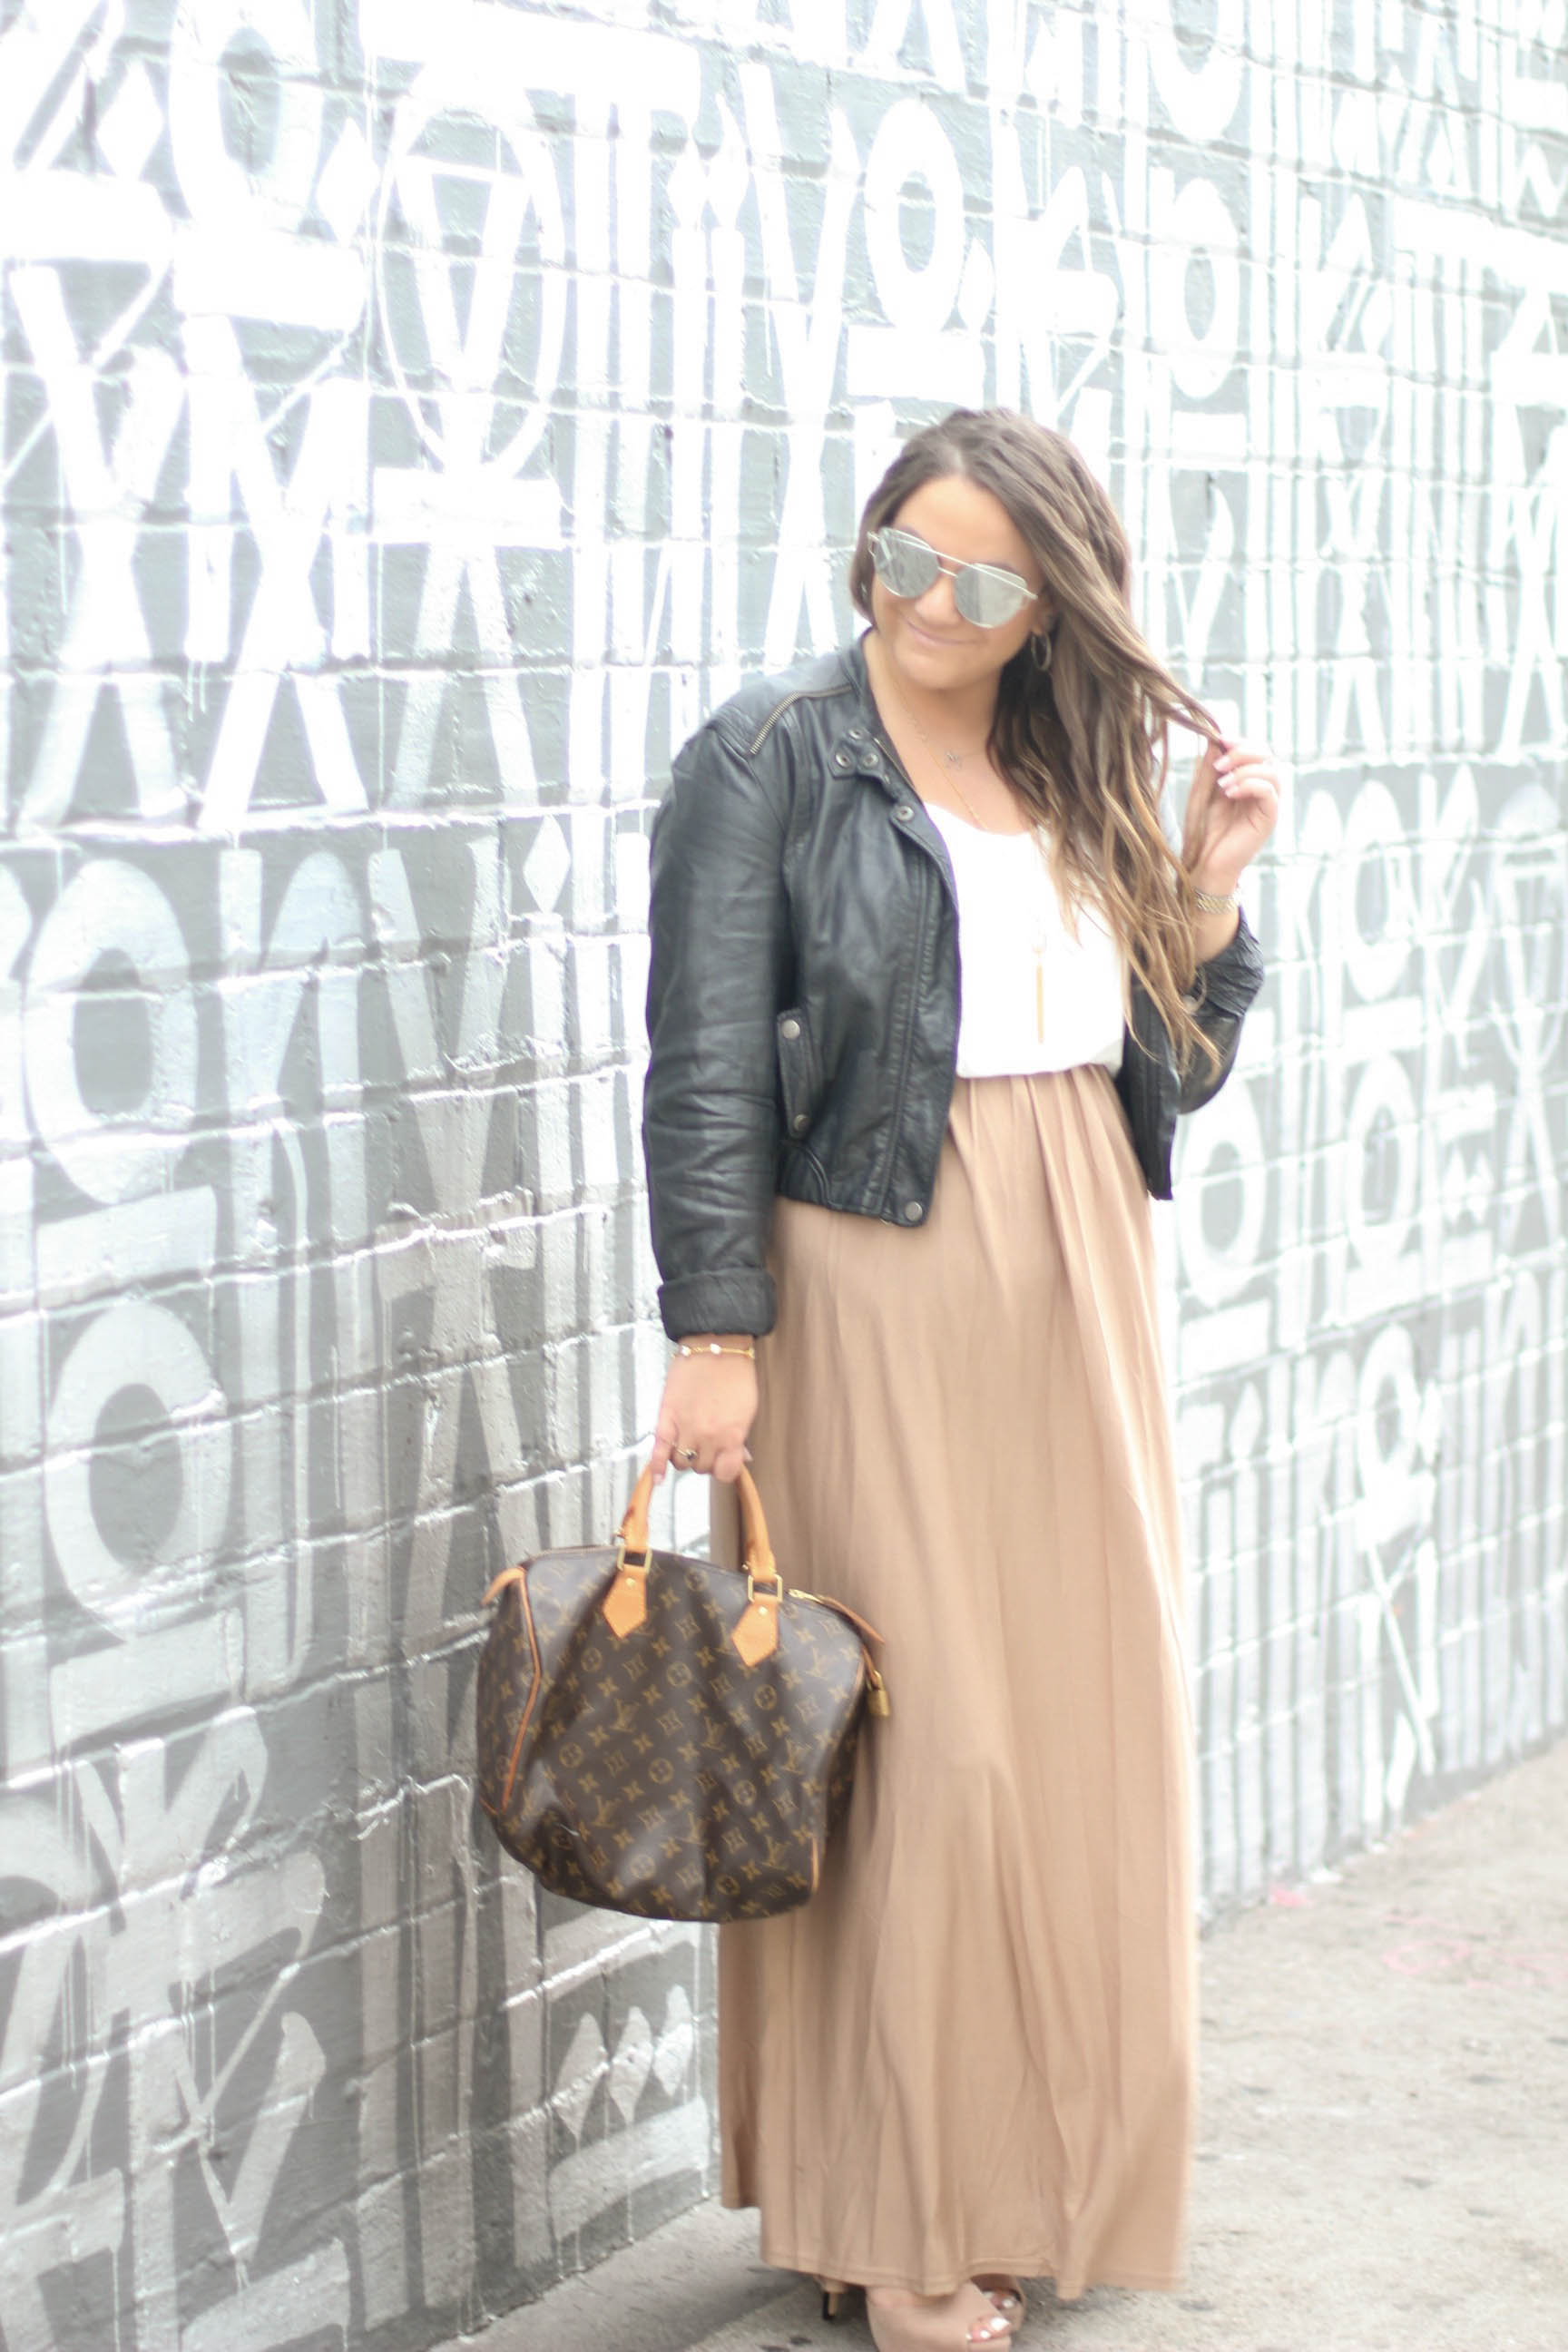 missyonmadison, melissa tierney, fashion blogger, blogger style, winter style, fashion goals, outfit inspo, outfit goals, de blossom heels, two tone heels, maxi dress, how to style a maxi dress for winter, leather jacket, moto jacket, how to style a moto jacket, louis vuittion, louis vuitton speedy bag, mirrored sunglasses, mirrored aviators, winter style, brunette hair, curled hair, winter hairstyle, la blogger, la style, backless maxi dress, winter maxi,